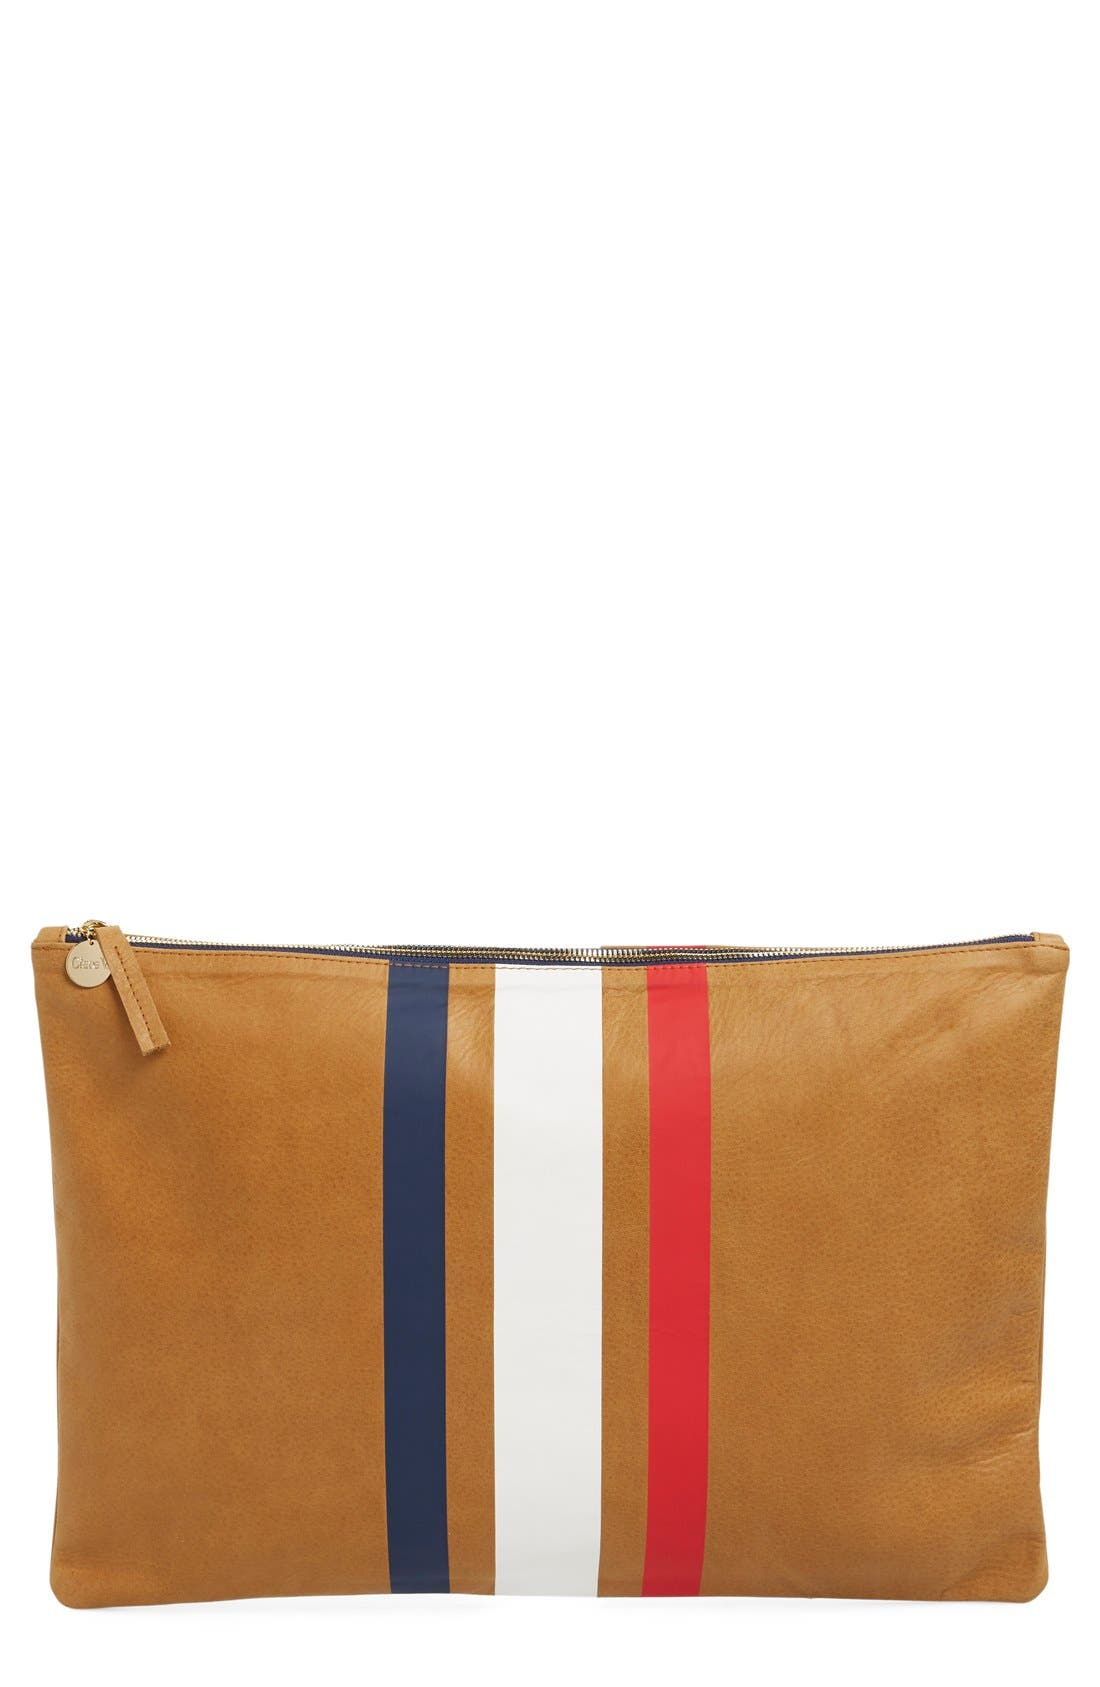 Main Image - Clare V. 'Oversize' Stripe Zip Leather Clutch